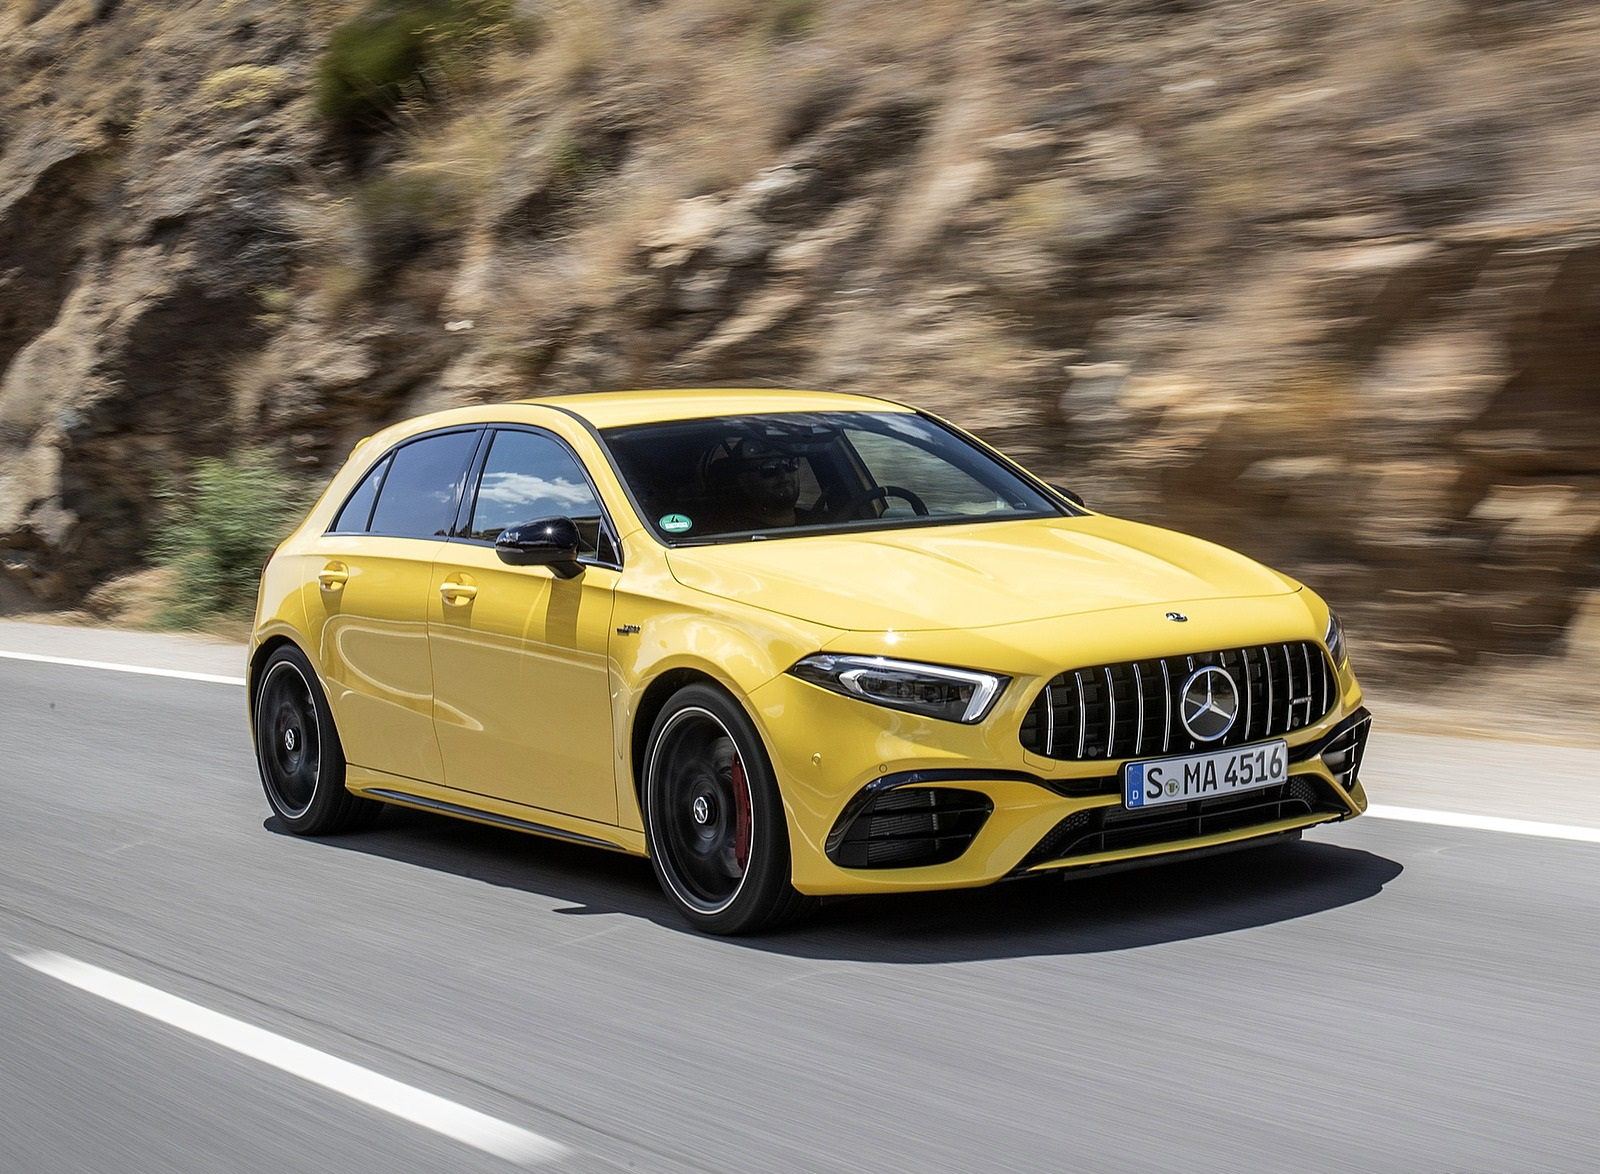 2020 Mercedes-AMG A 45 S 4MATIC+ (Color: Sun Yellow) Front Three-Quarter Wallpapers (4)